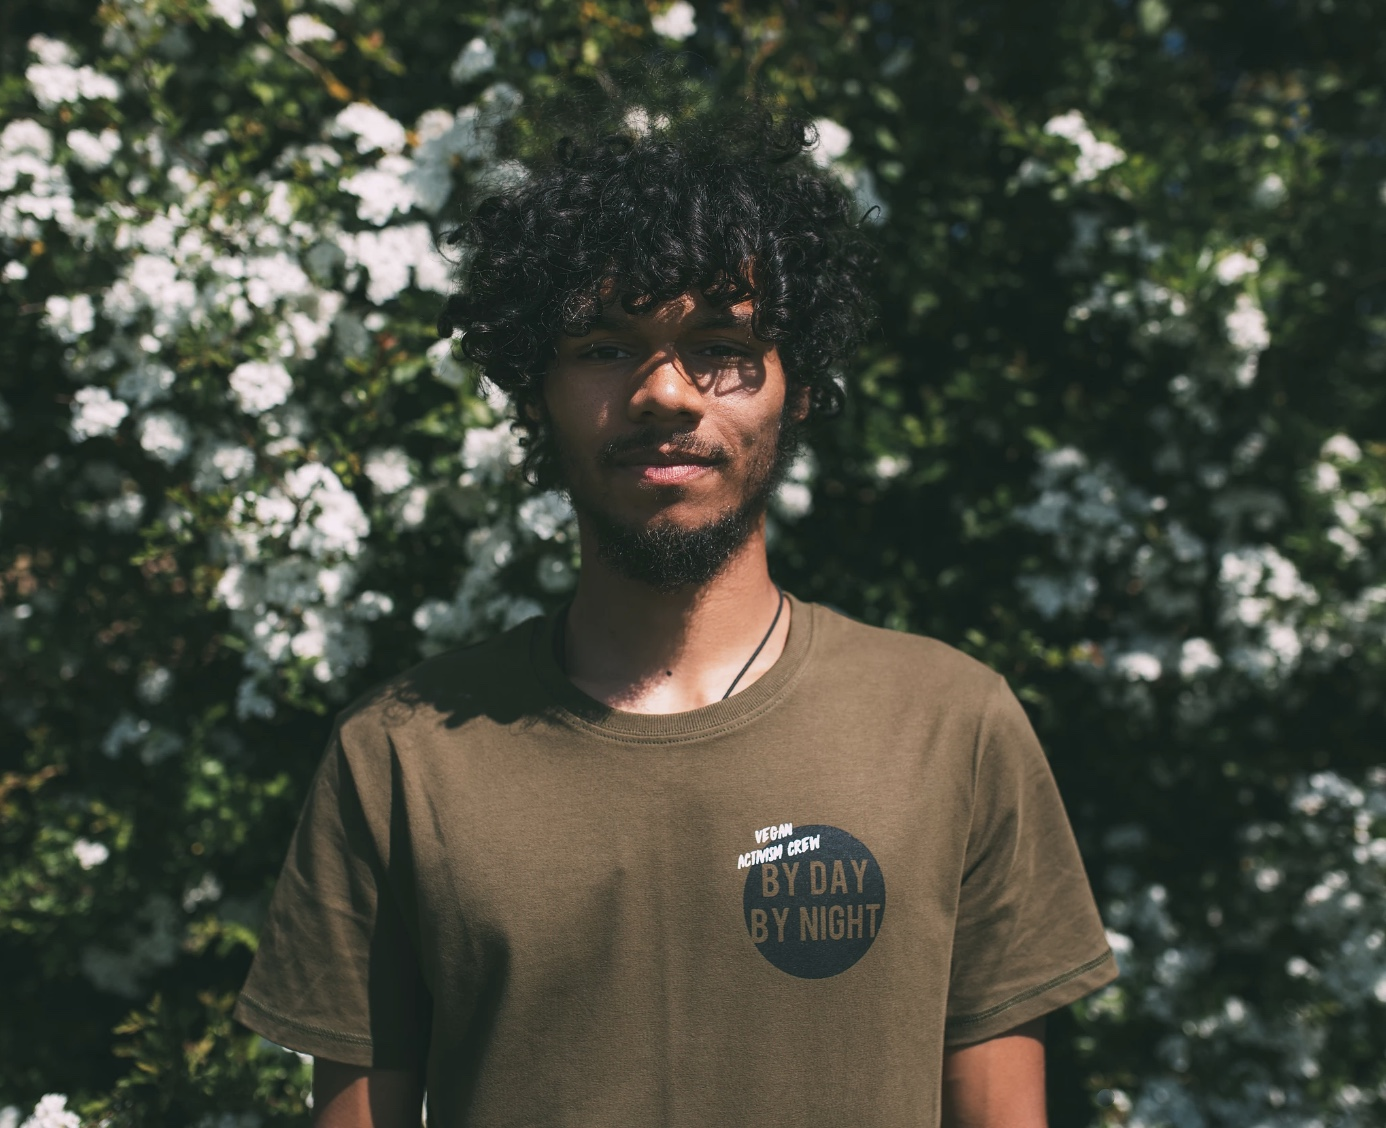 vegan clothing brands uk olive tshirt